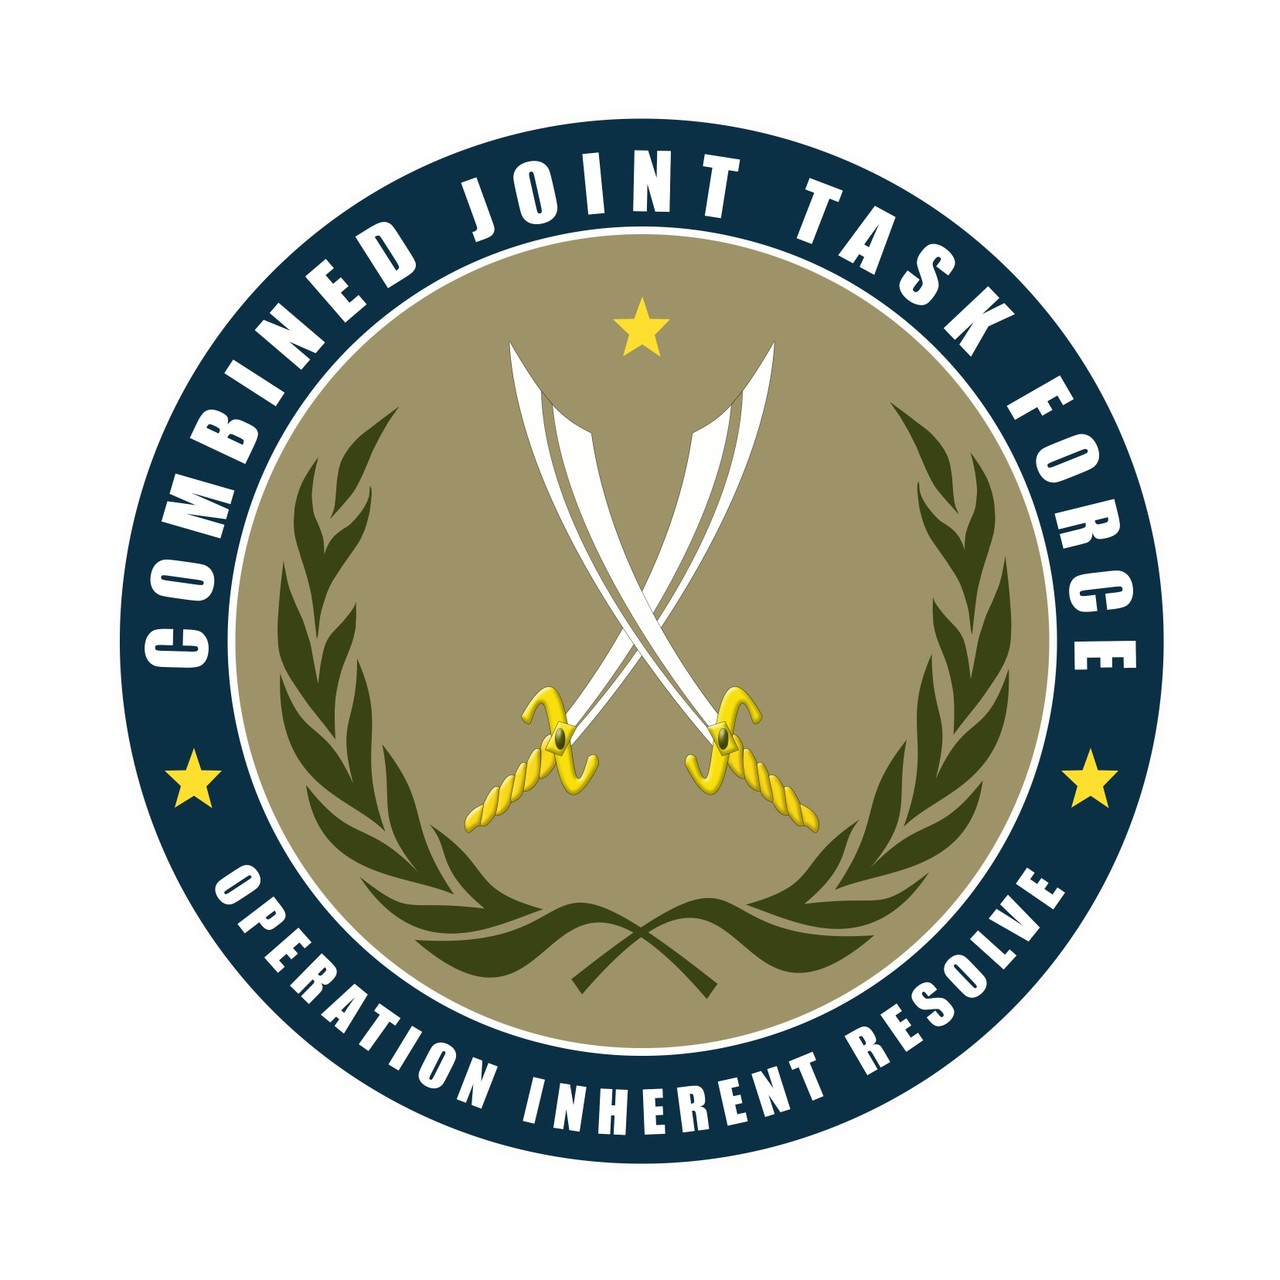 Temporary adjustment of the Spanish contingent deployed in Operation 'Inherent Resolve'